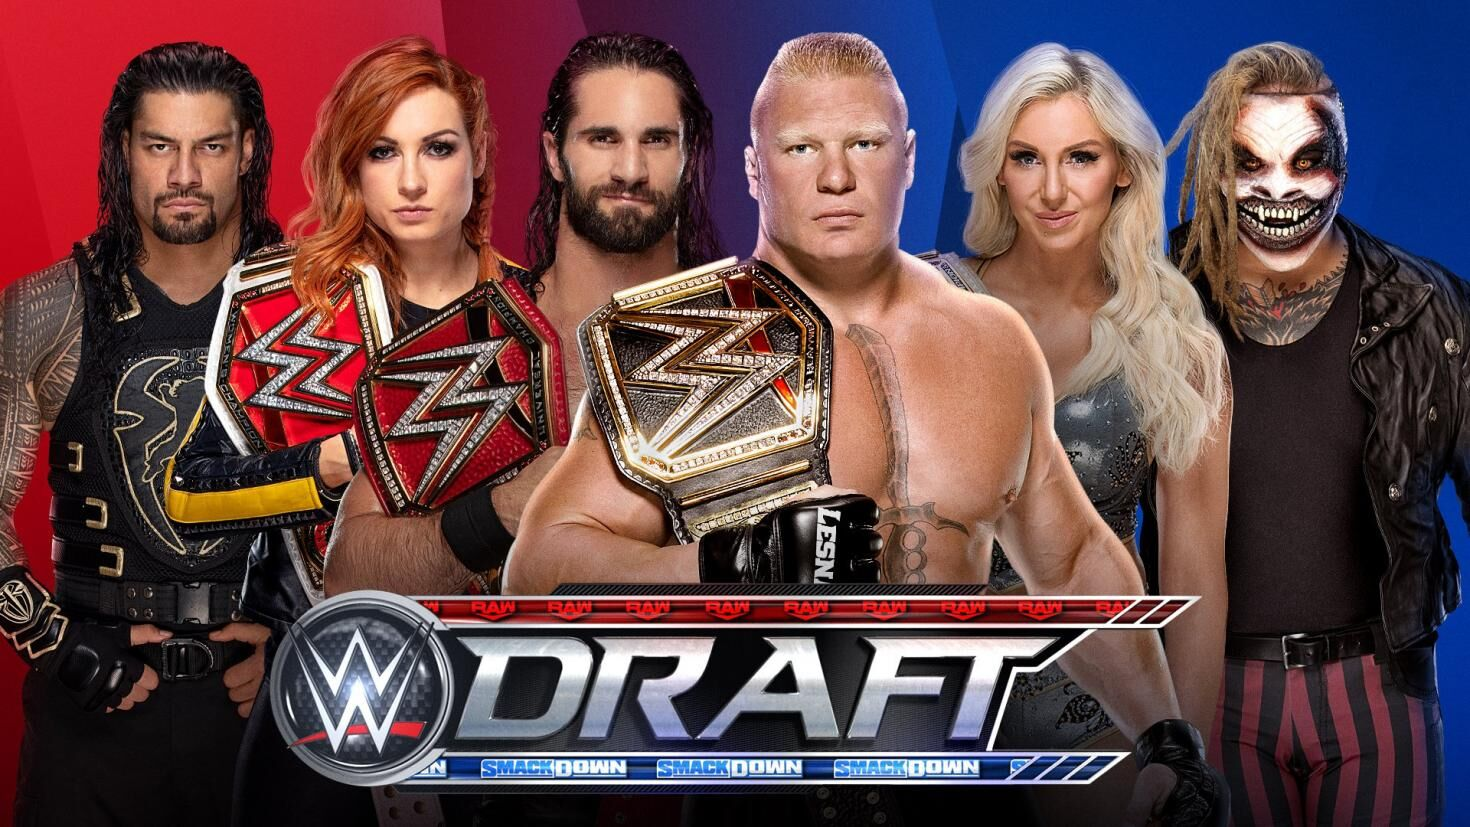 WWE: Draft wasn't over the top, but it did what it needed to do